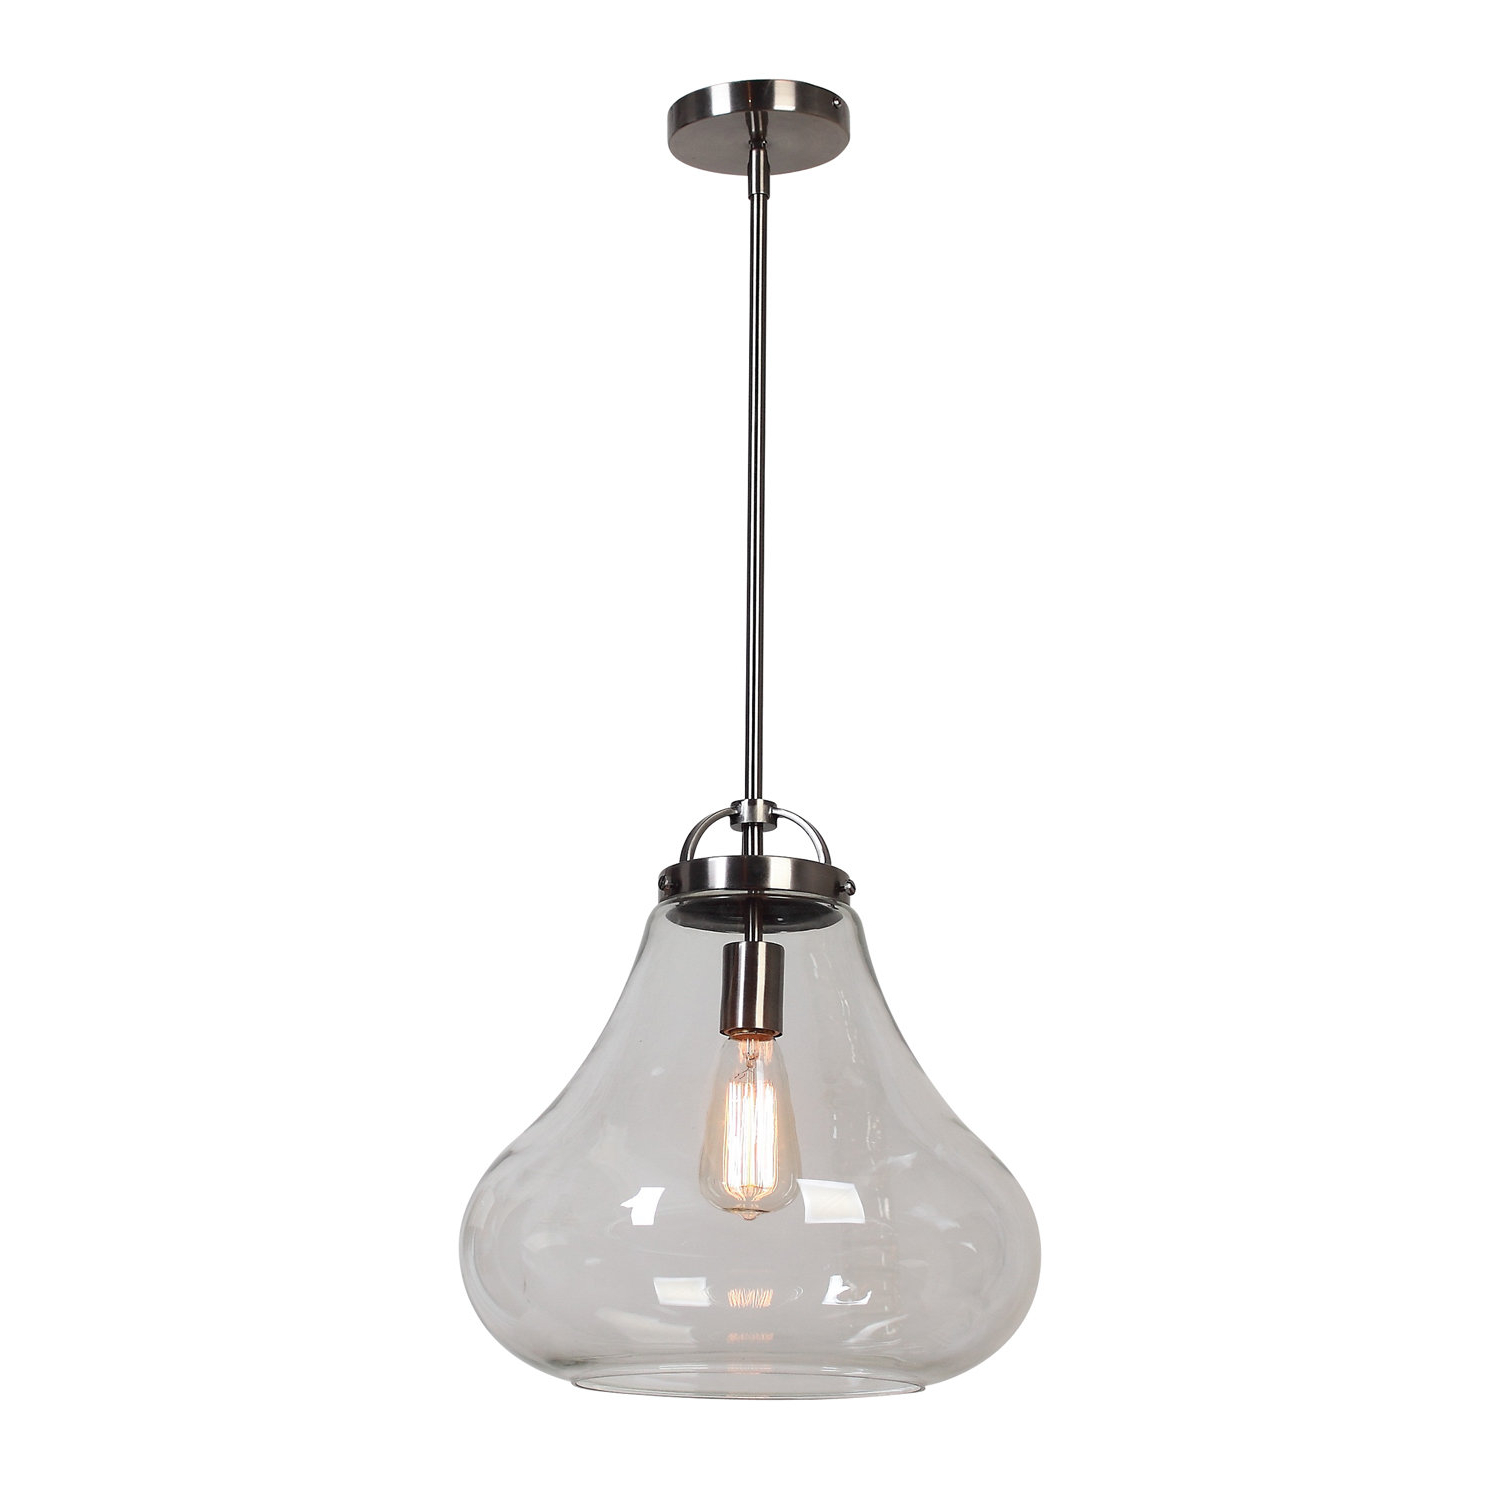 Weatherspoon 1 Light Schoolhouse Pendant Throughout Best And Newest Kimsey 1 Light Teardrop Pendants (View 7 of 25)